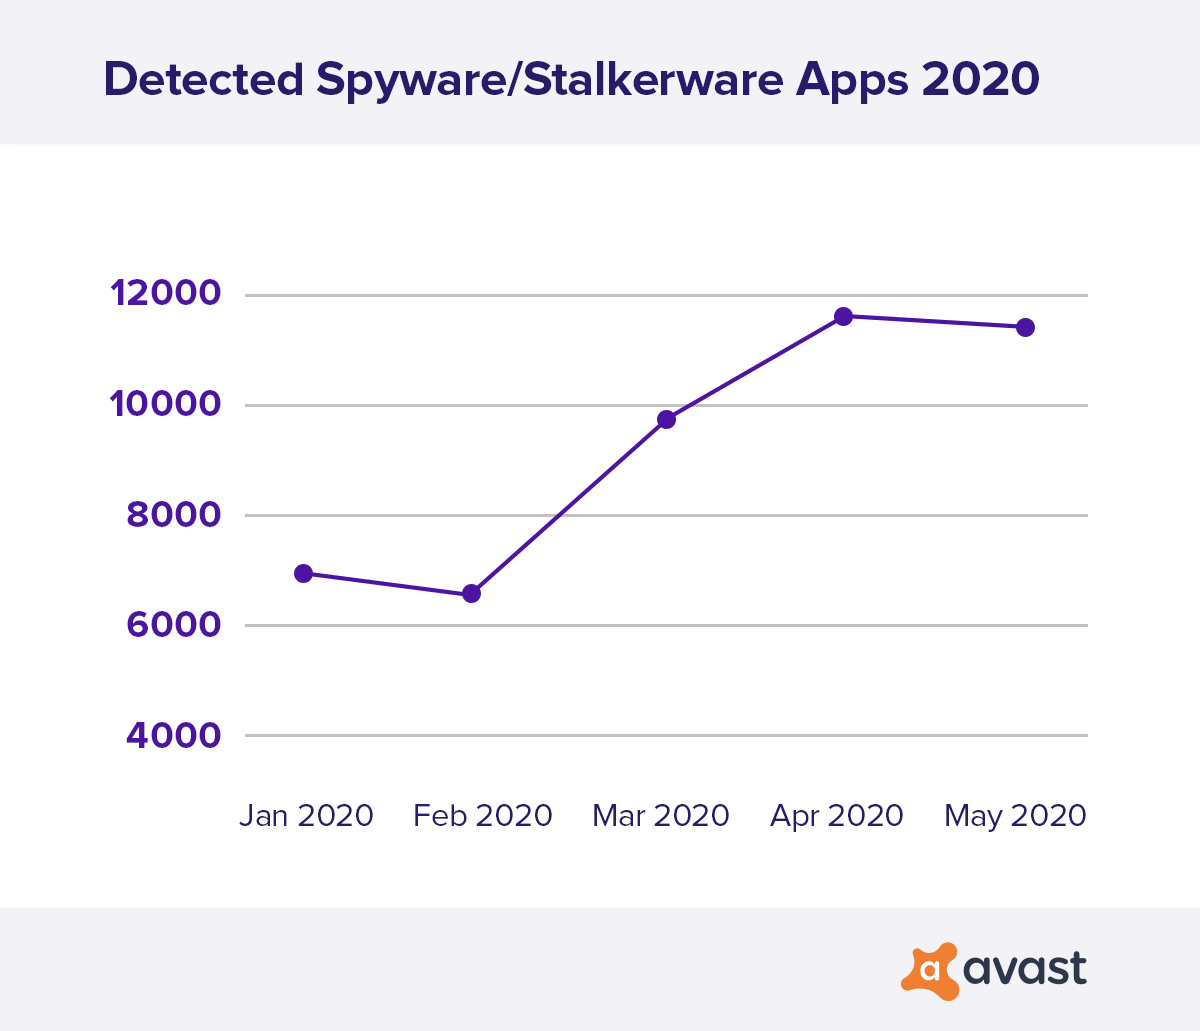 Detected Spaware apps chart